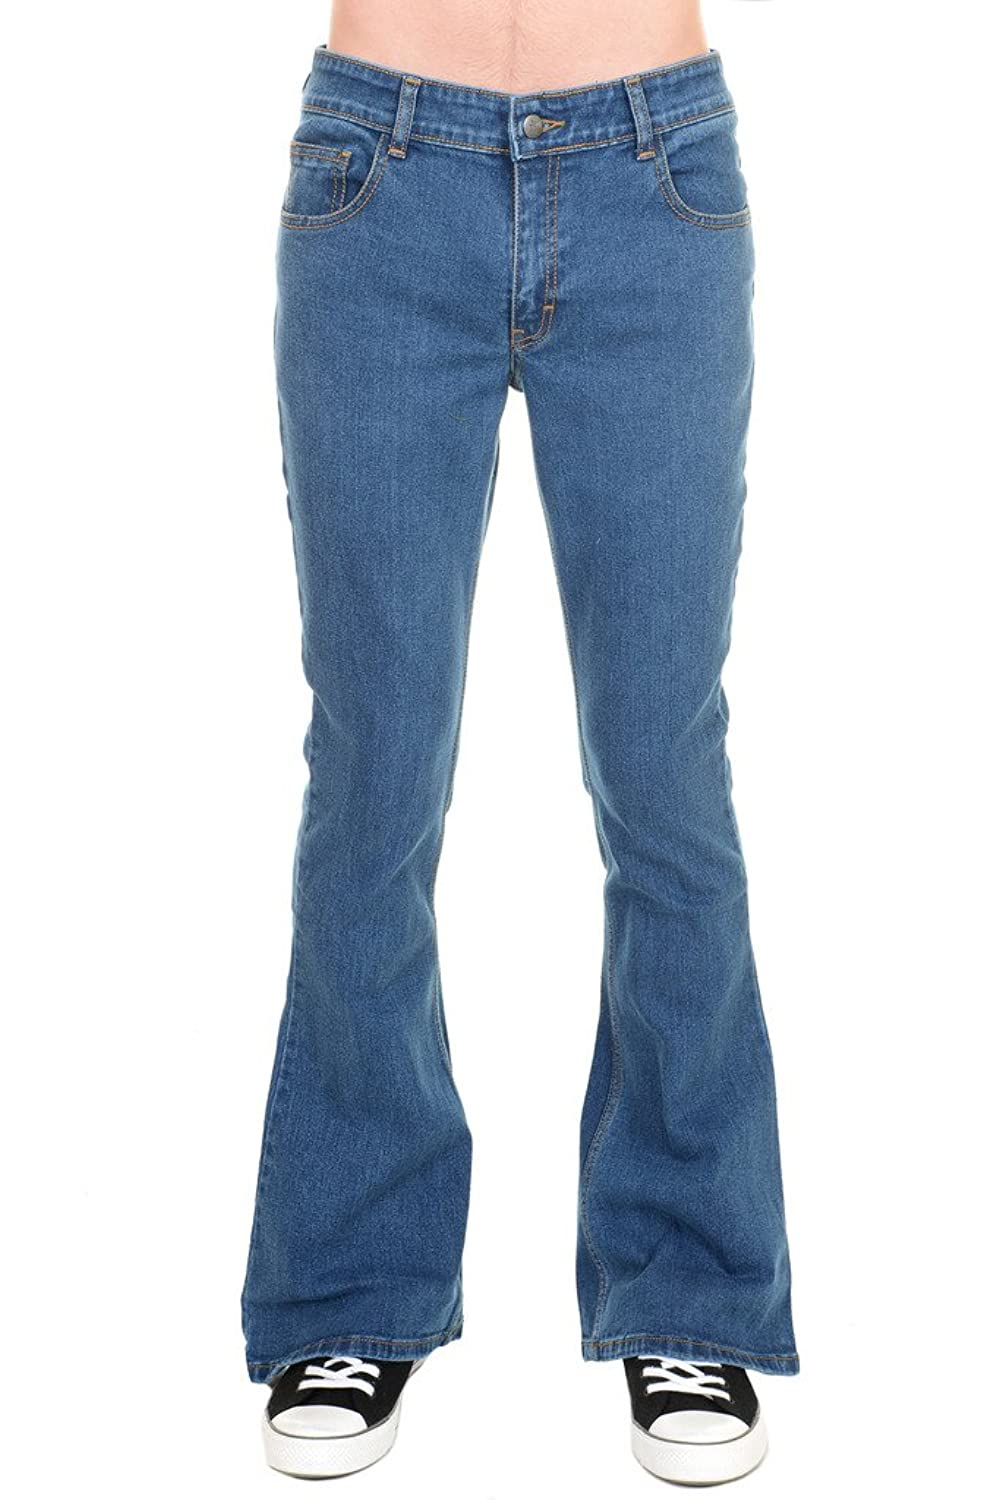 Men's Vintage Pants, Trousers, Jeans, Overalls Run & Fly Stonewash Stretch Denim Bell Bottom Flares $54.95 AT vintagedancer.com